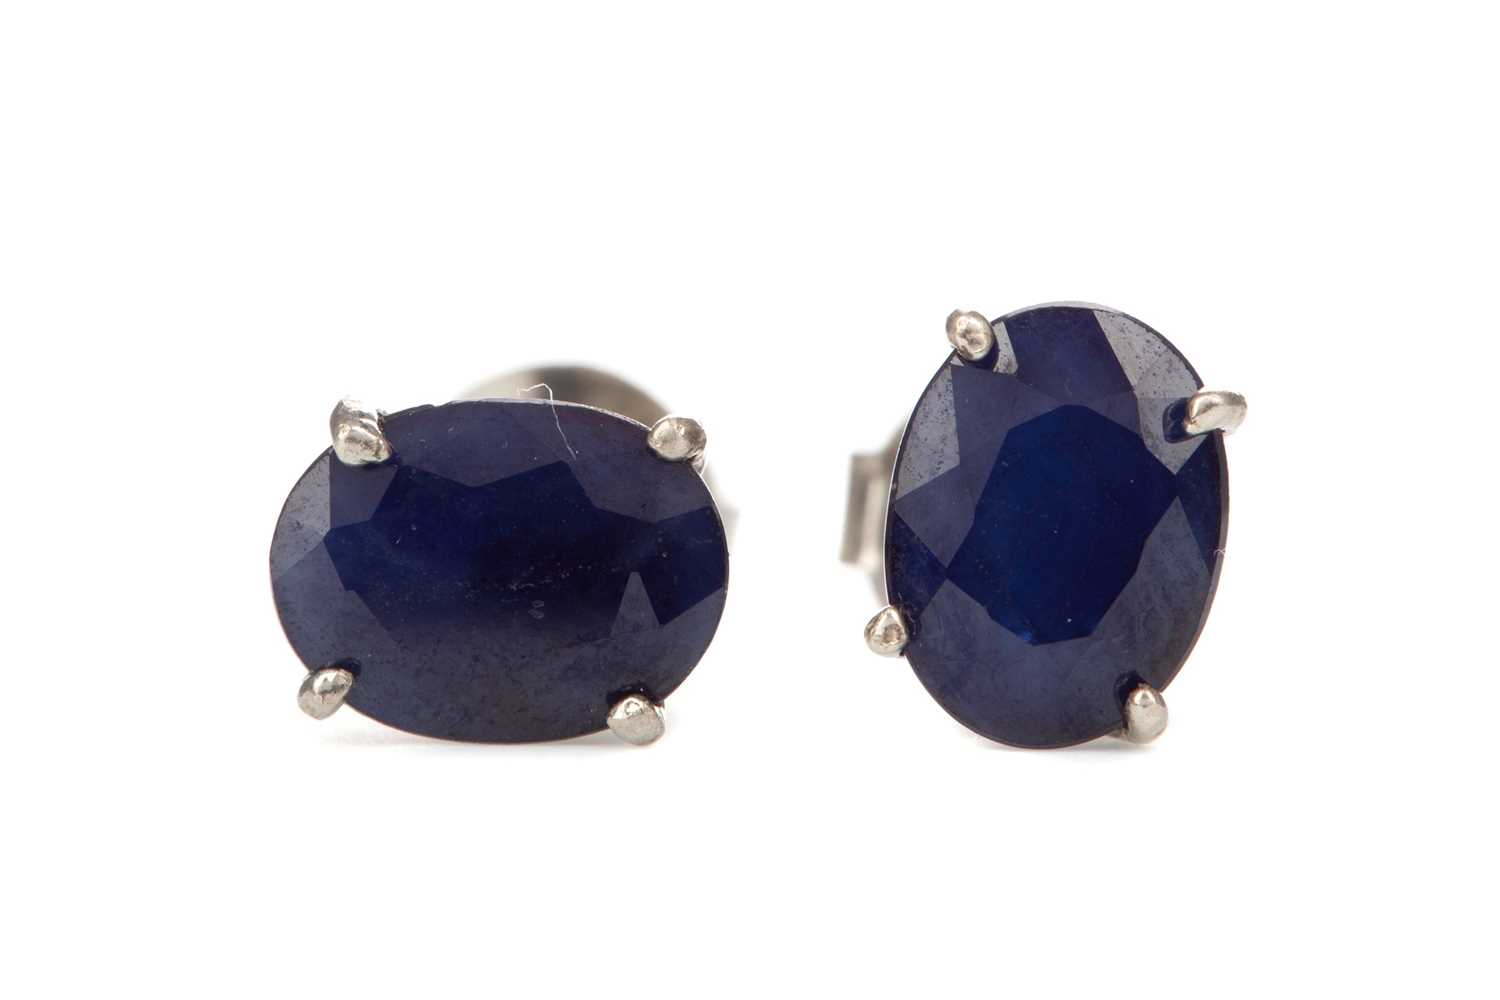 Lot 360 - A PAIR OF TREATED SAPPHIRE EARRINGS